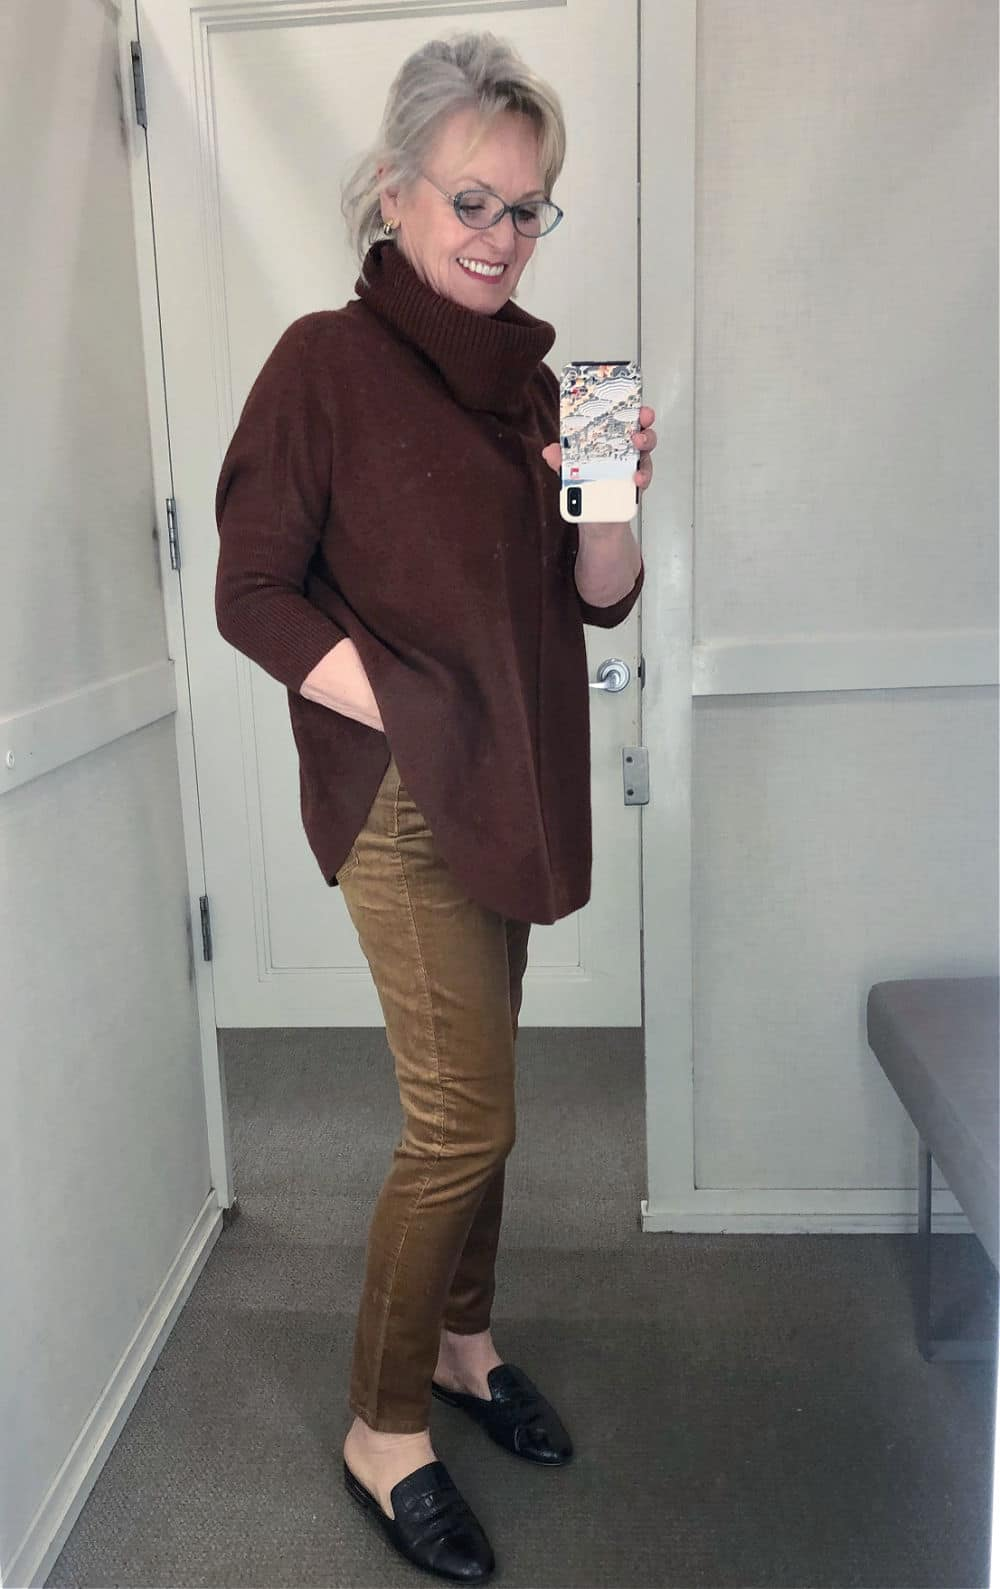 fashion blogger jennifer of a well styled life in Loft dressing room wearing cords and sweater poncho